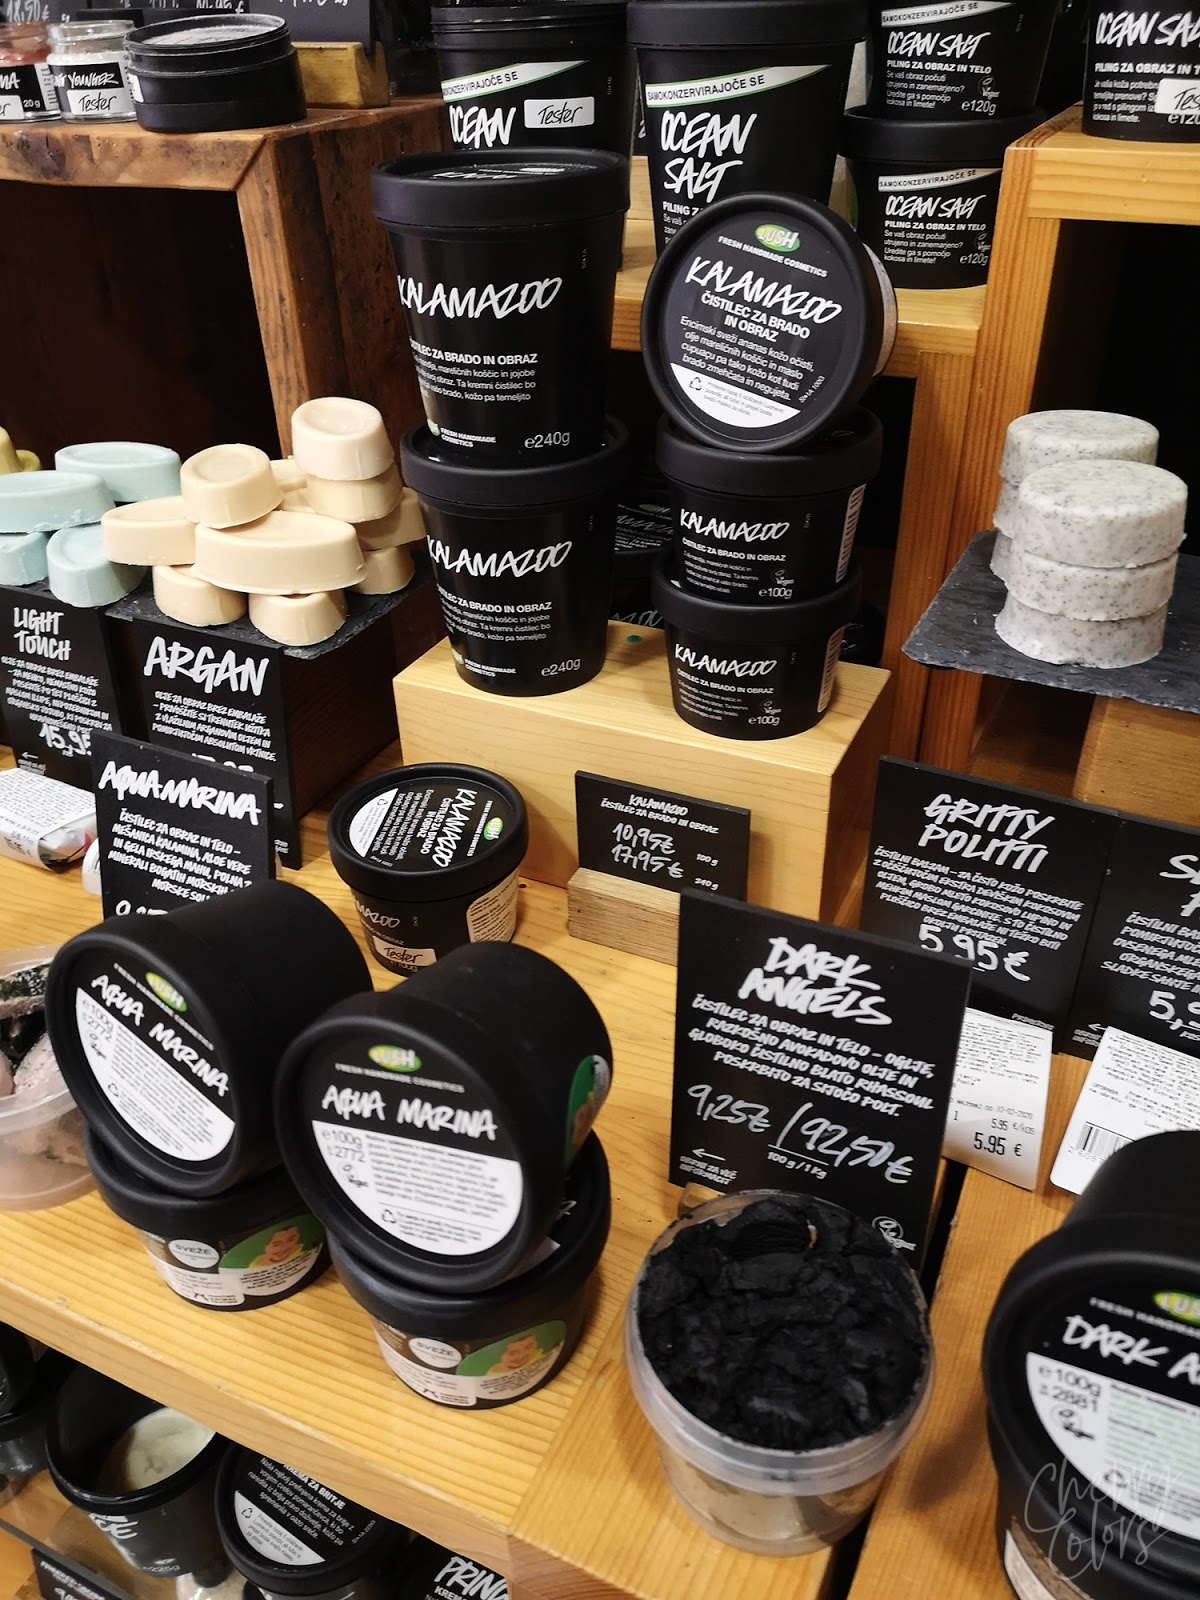 Lush face products